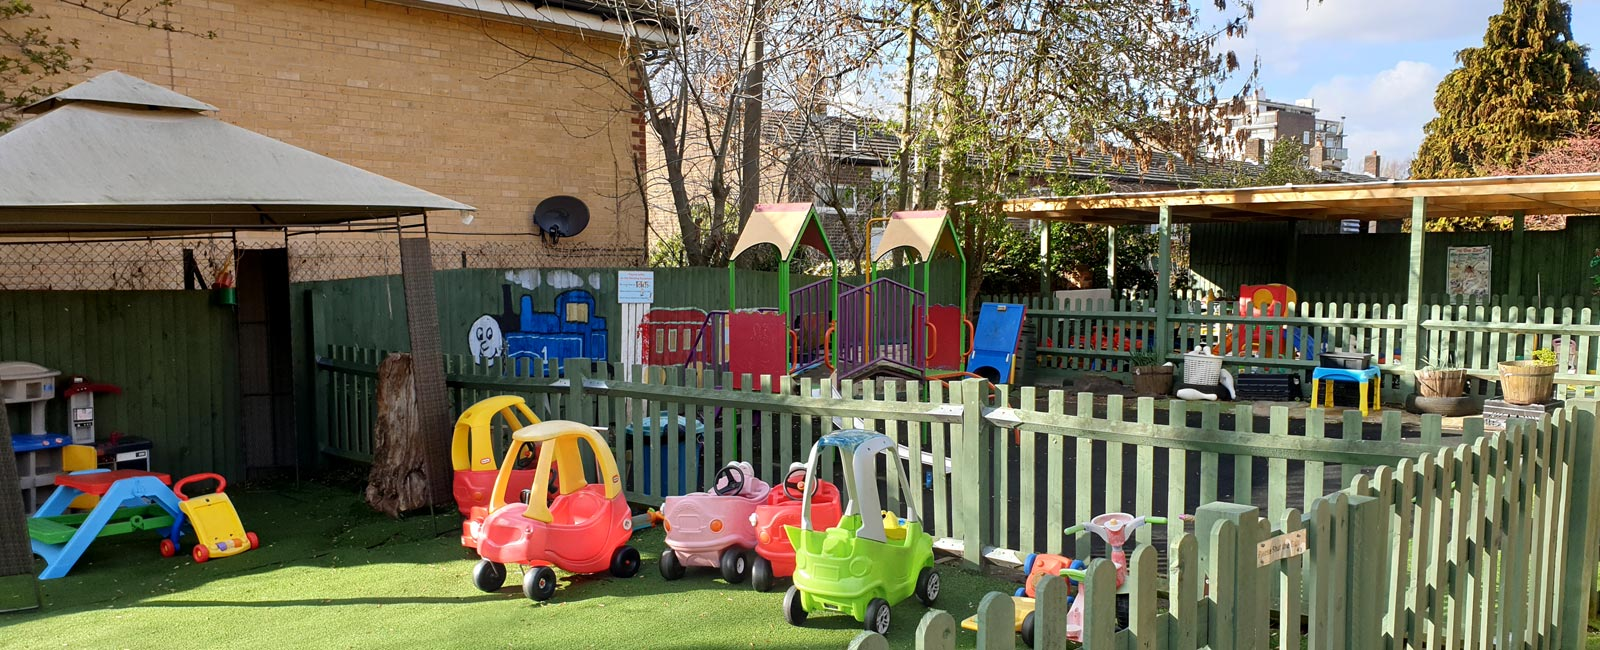 Our extensive outdoor areas are also incredibly well resourced and equipped.